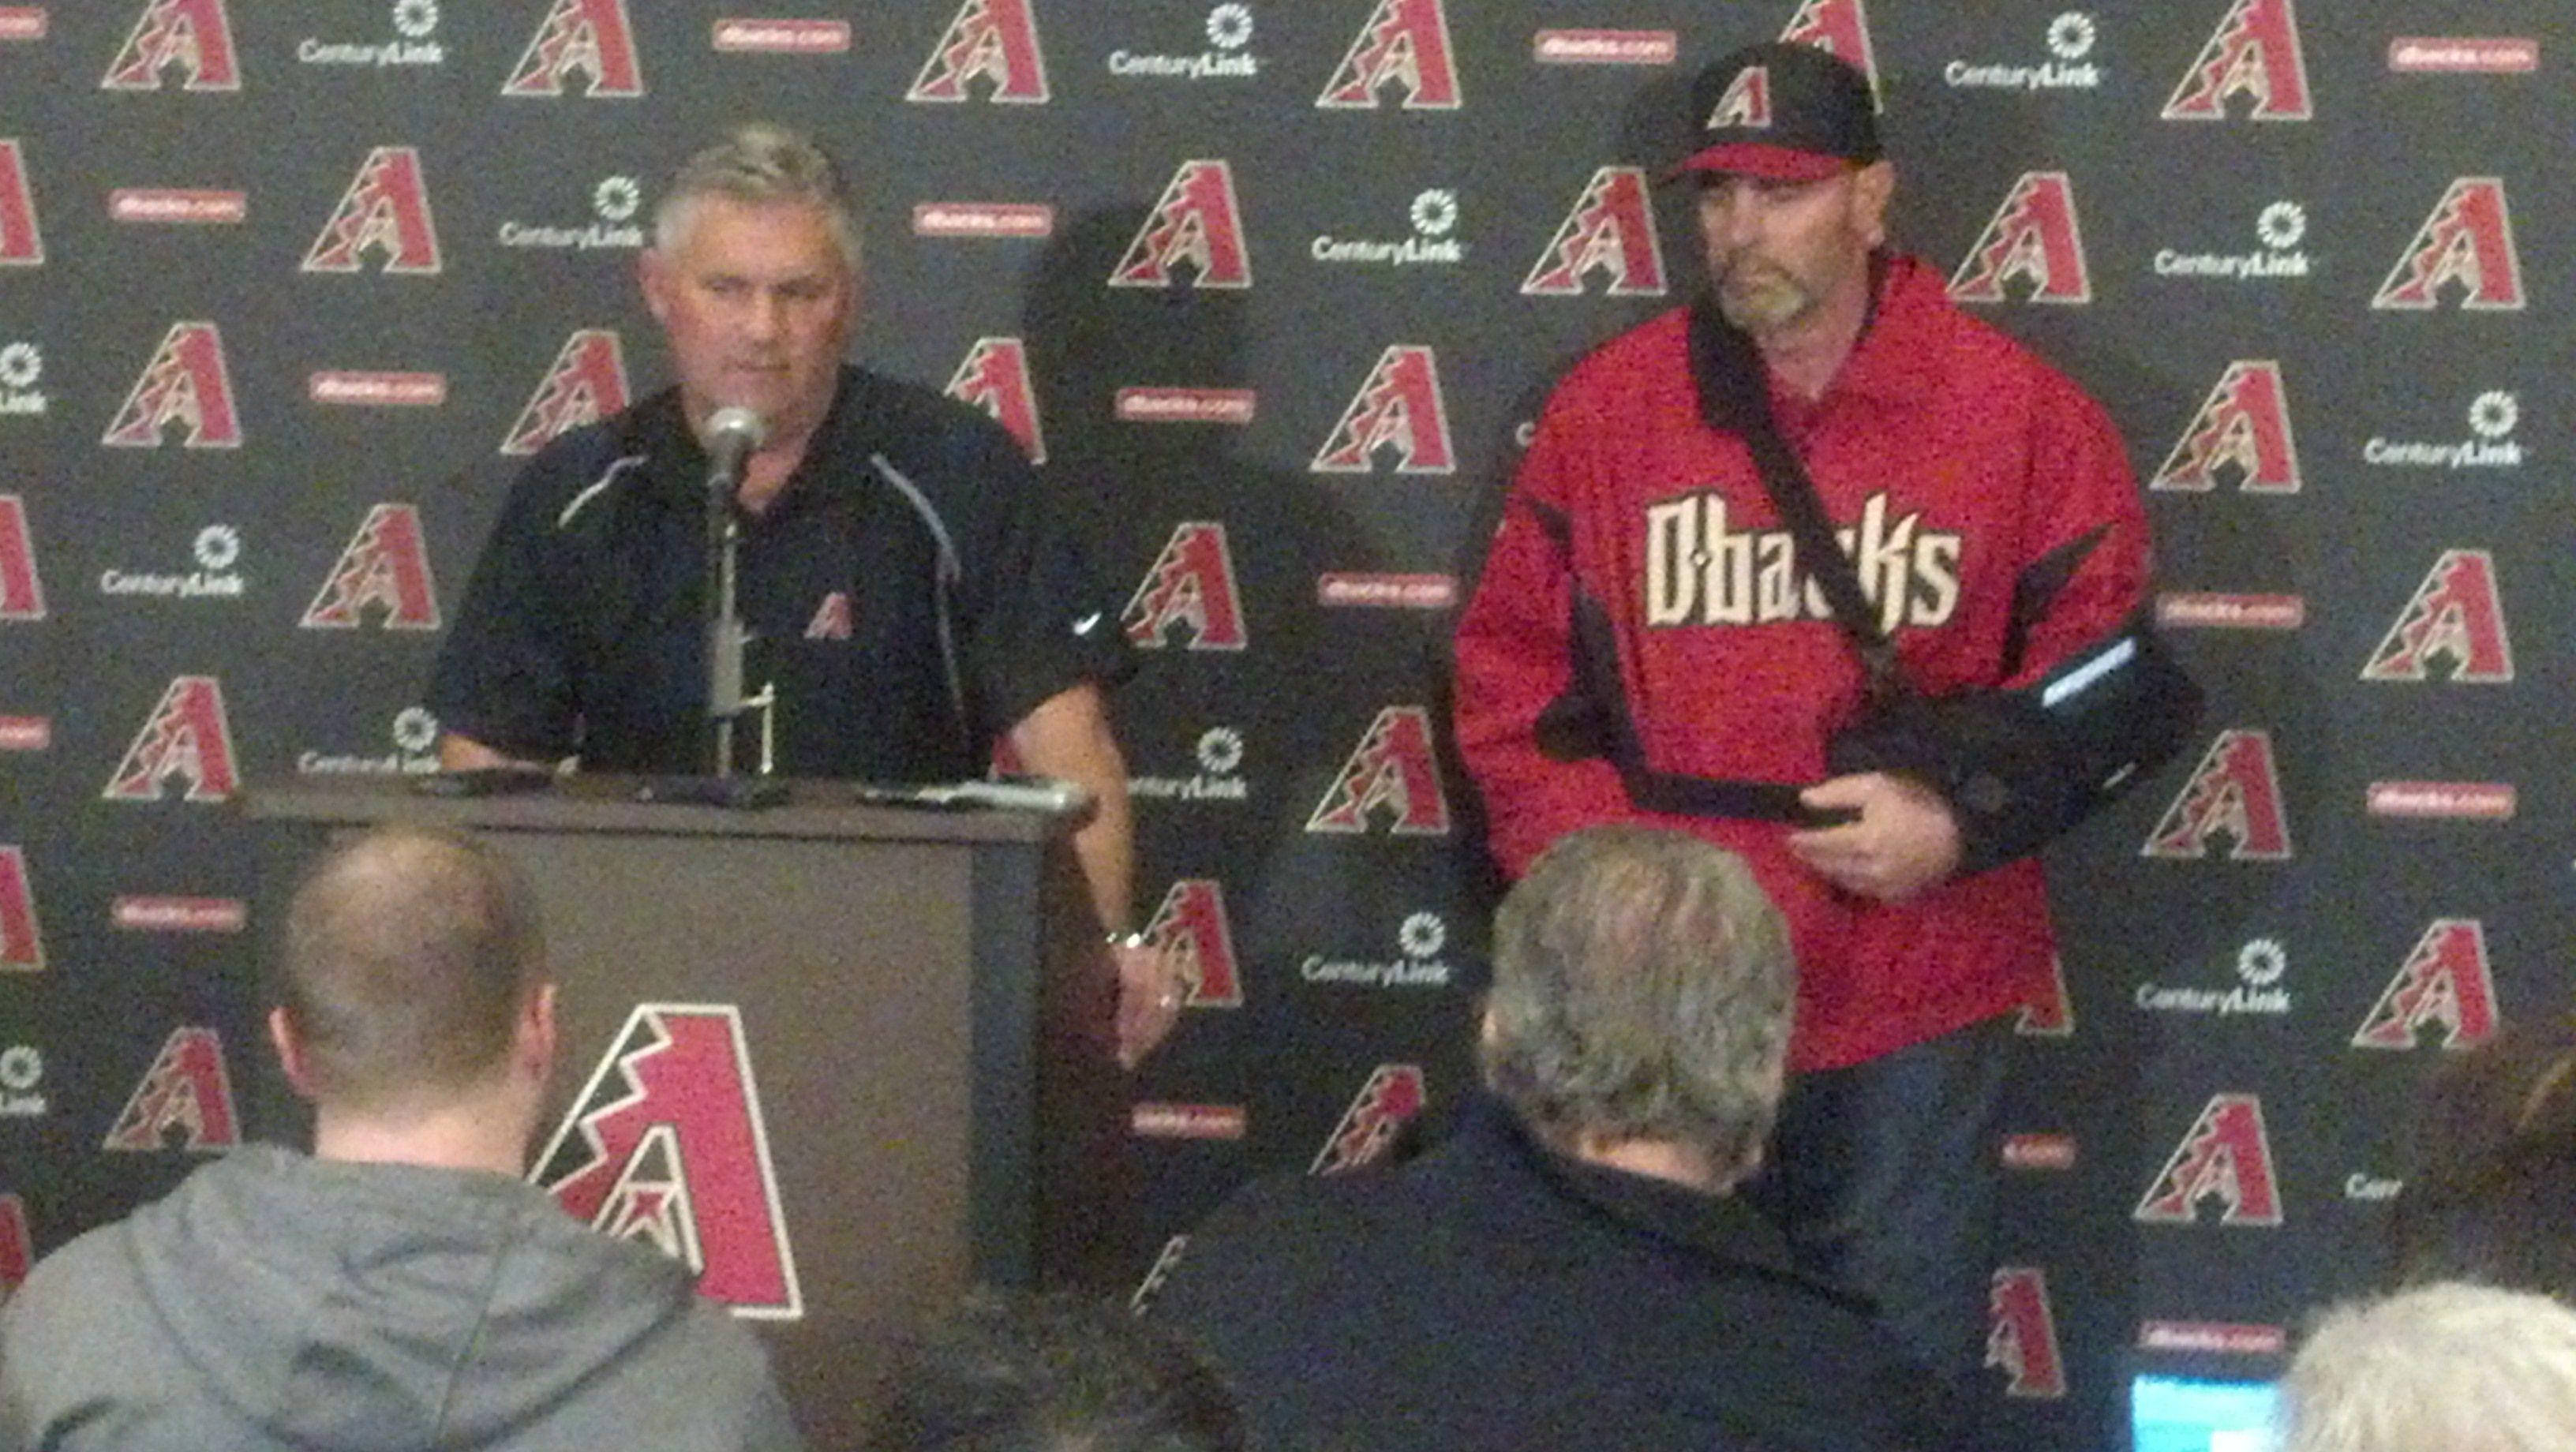 Diamondbacks news conference on Thursday morning (Photo credit: Daniel Westerhold, CBS 5 News)